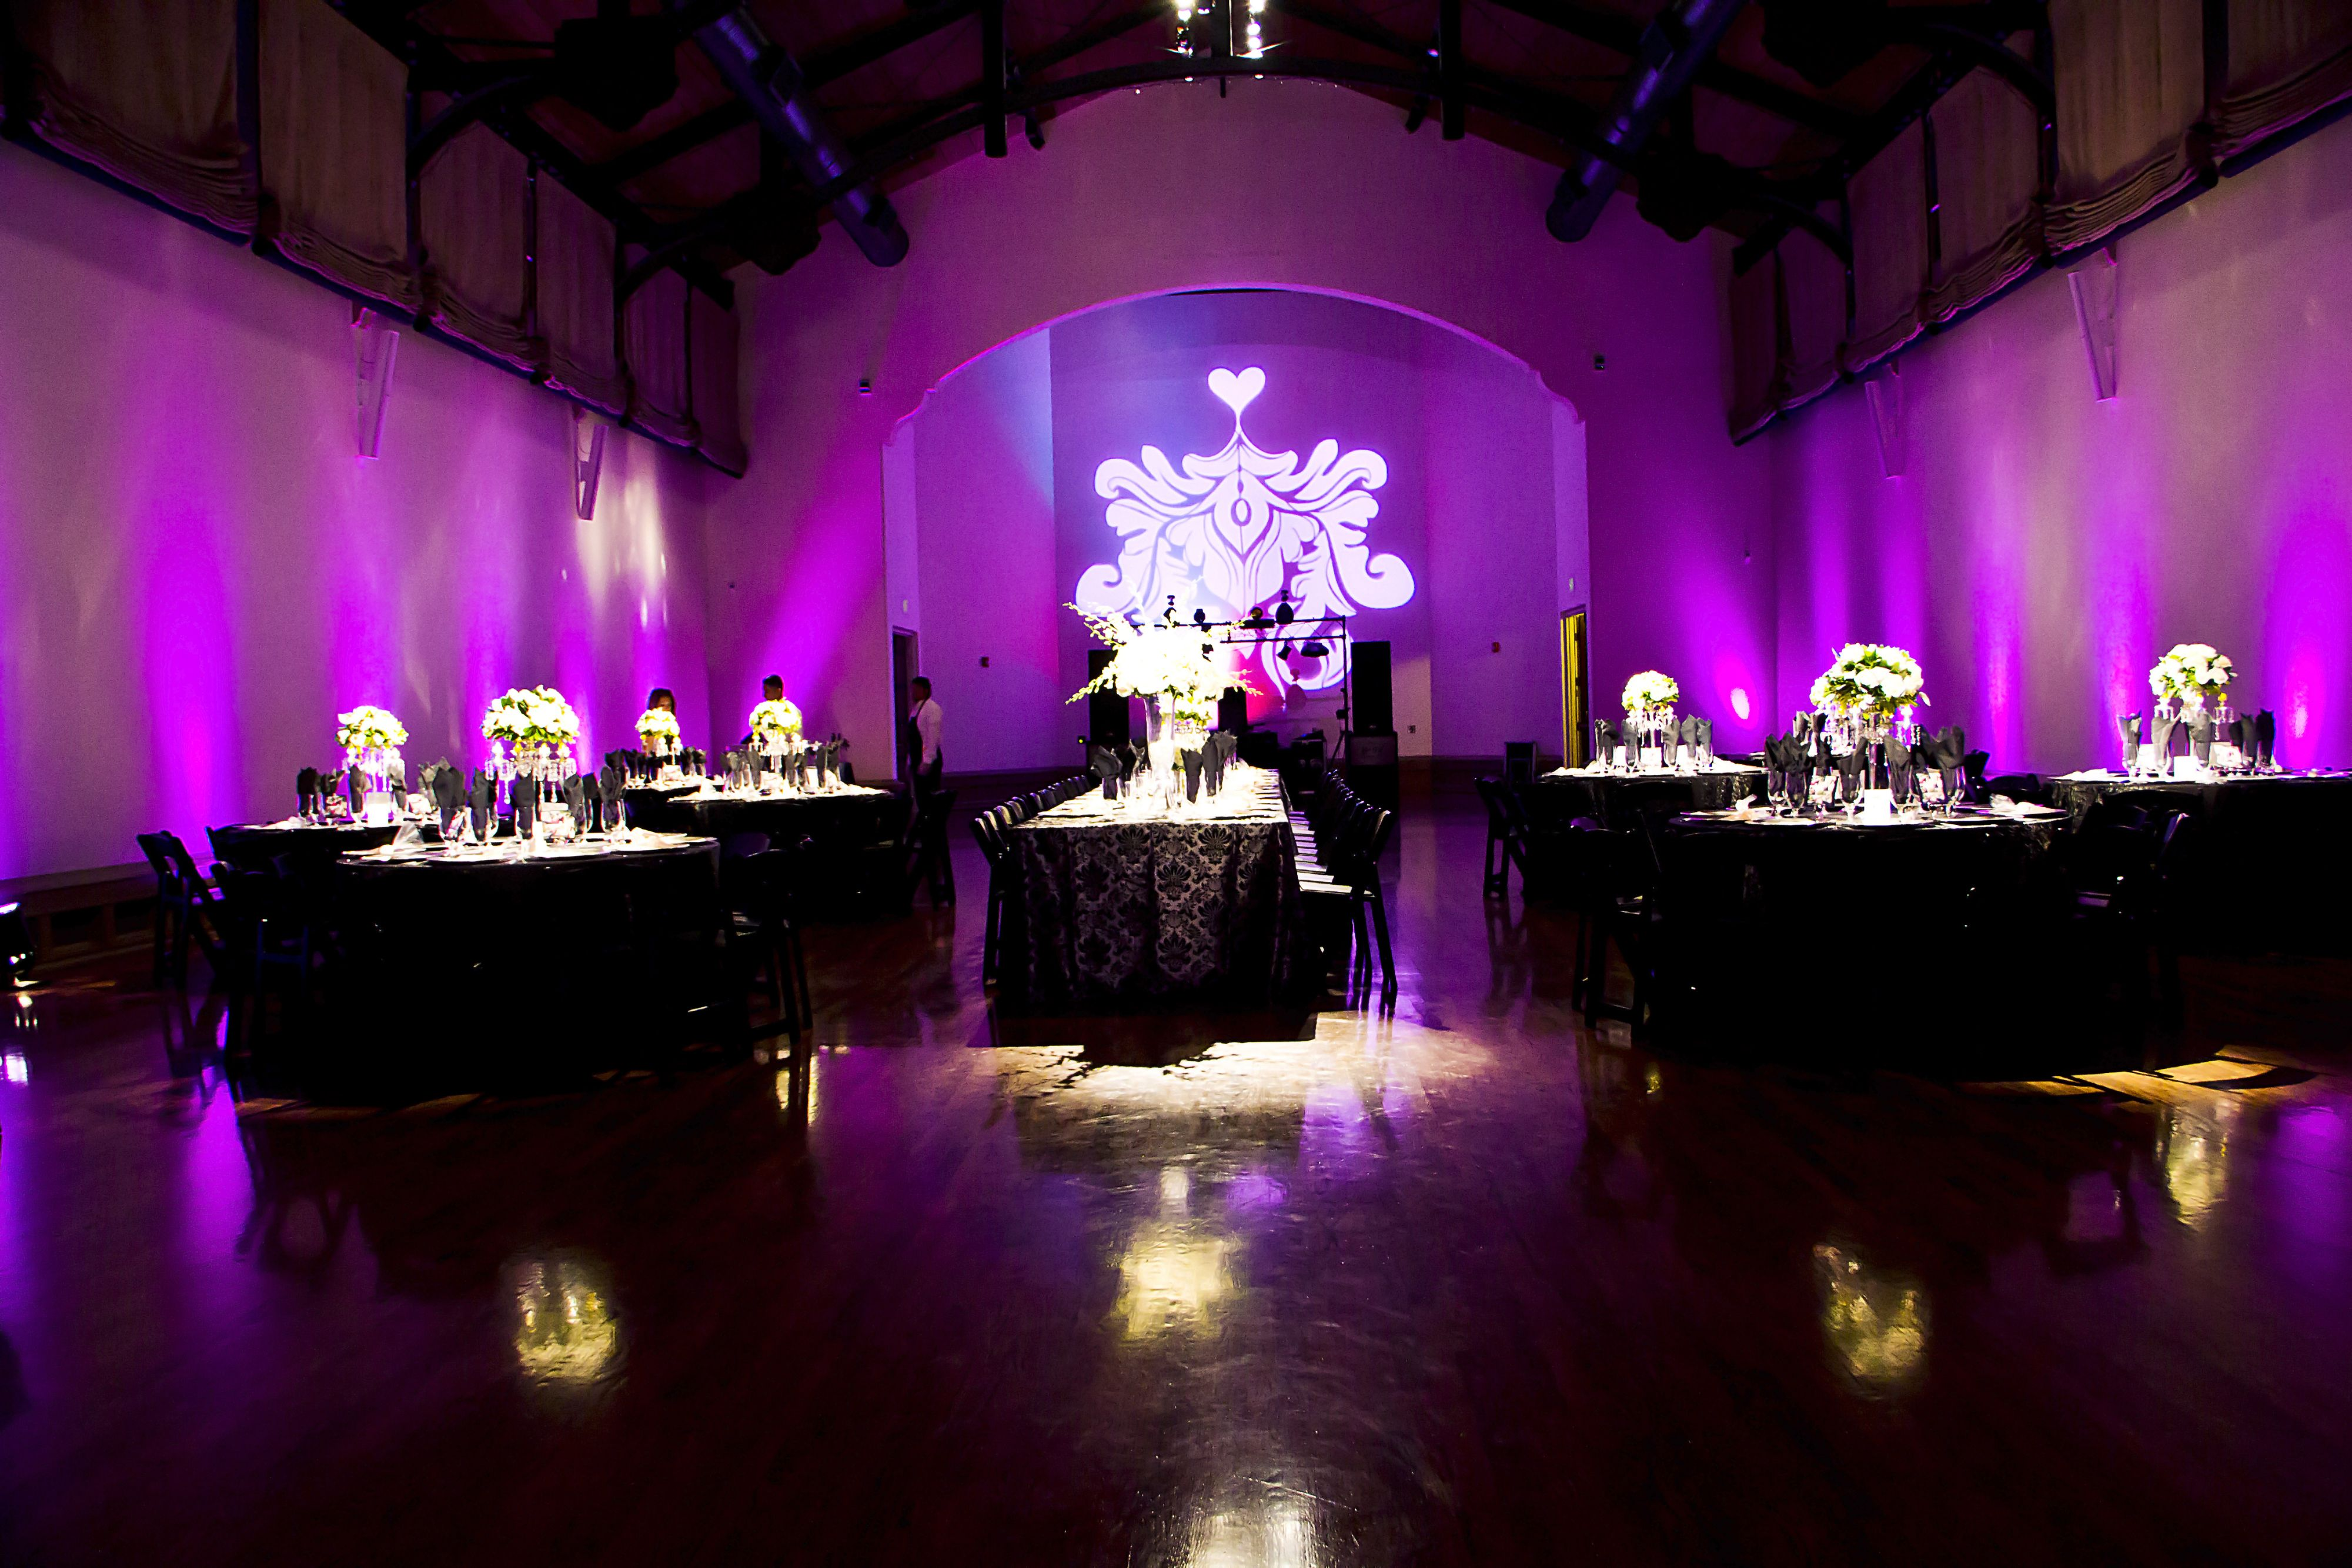 Nicci Mike San Antonio Wedding Planner San Antonio Weddings Wedding Planner Wedding